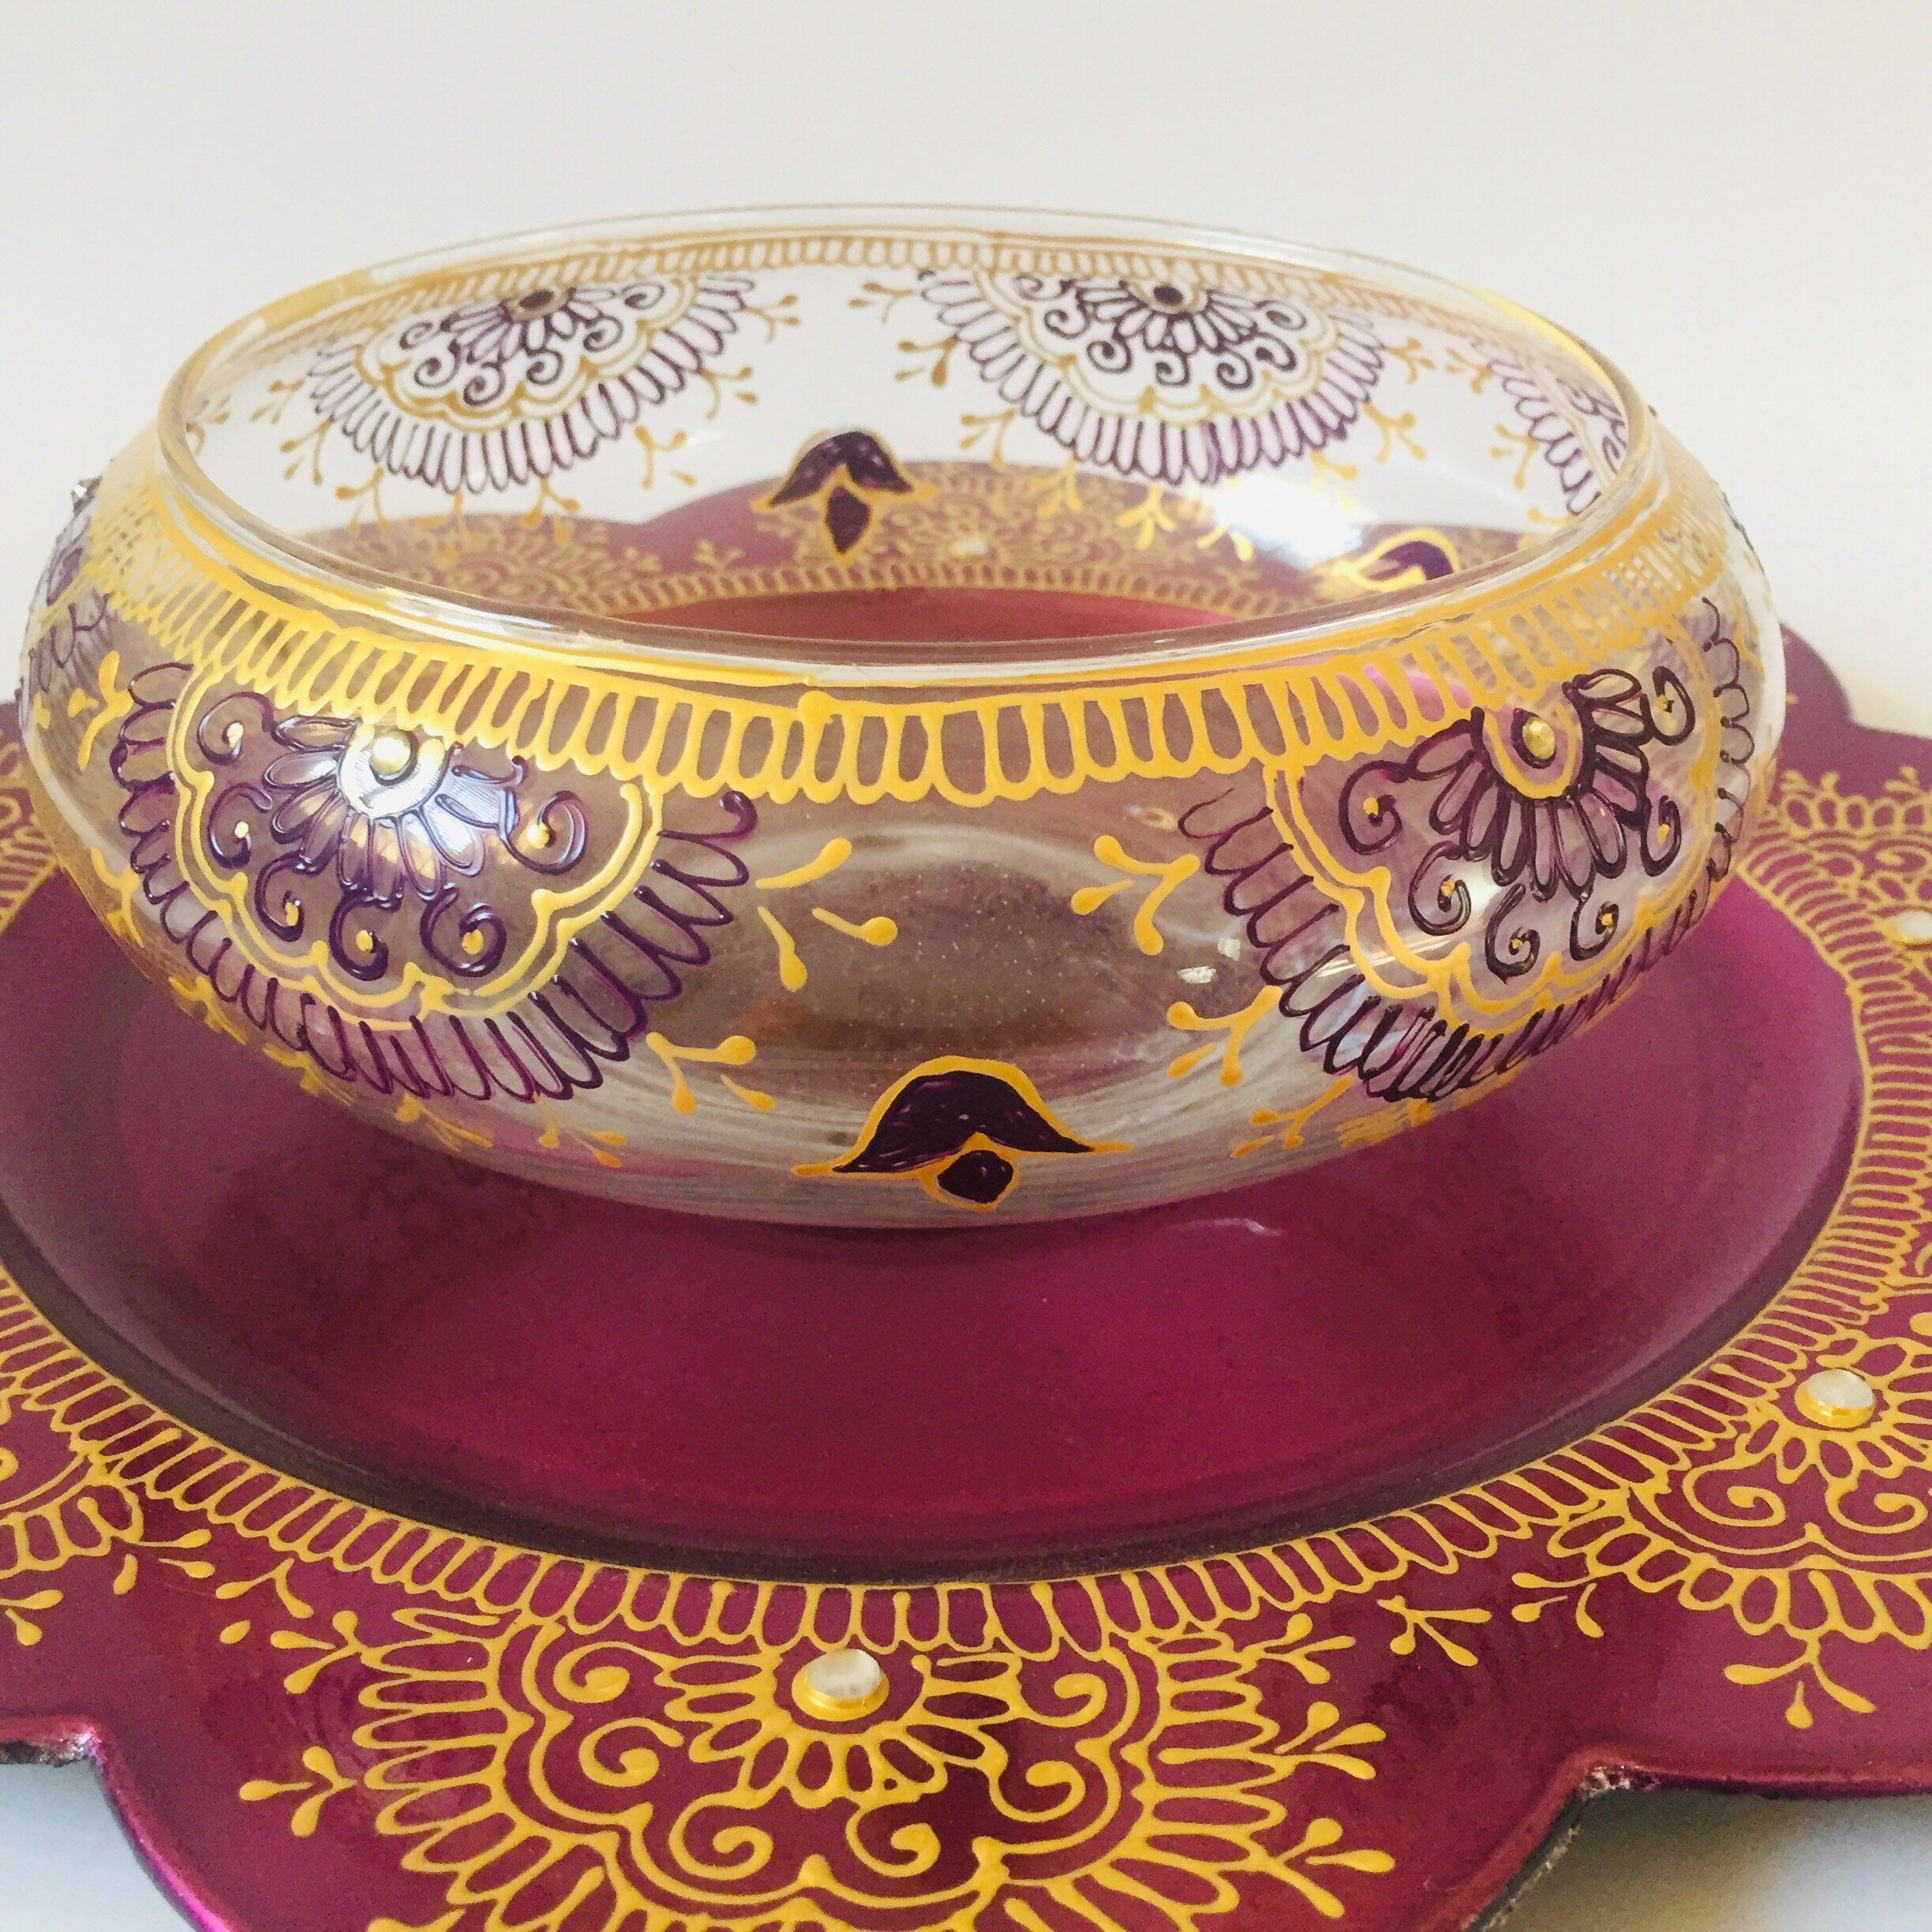 8in henna decorated glass bowl with decorated charger plate/wedding decor/Eid decor/Diwali decor/Bollywood wedding/Indian/Pakistani #diwalidecorations Excited to share this item from my #etsy shop: 8in henna decorated glass bowl with decorated charger plate/wedding decor/Eid decor/Diwali decor/Bollywood wedding/Indian/Pakistani #diwalidecorationsathome